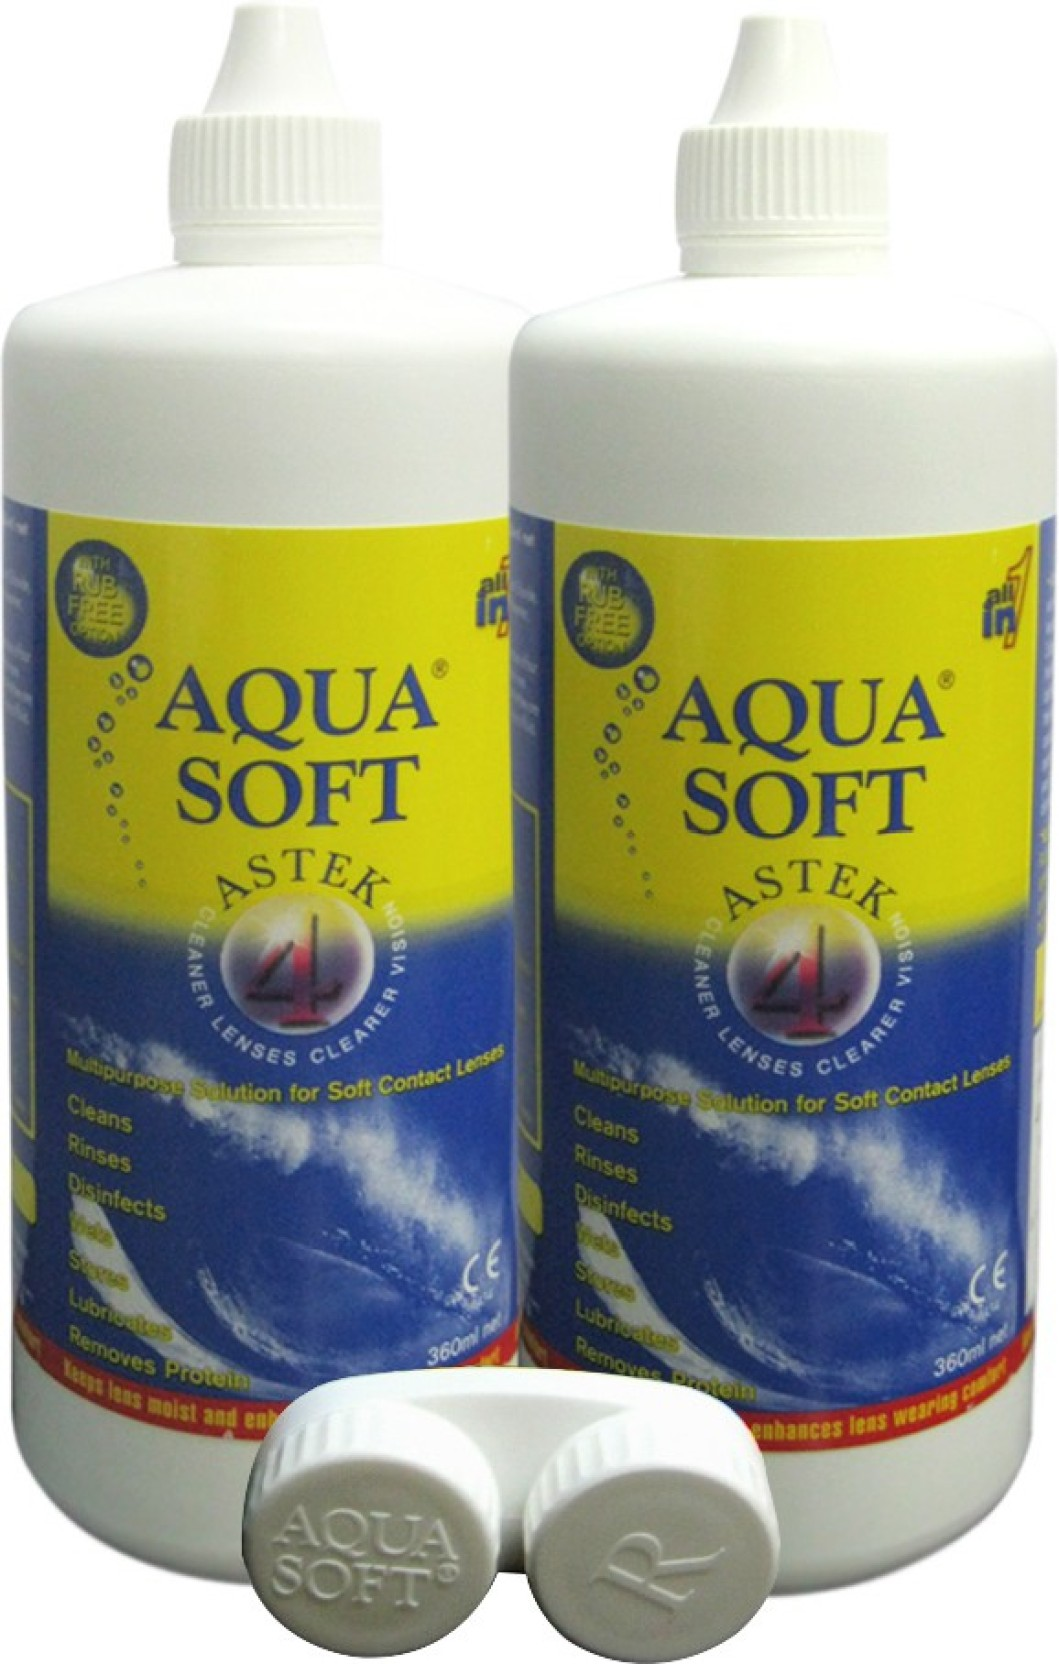 Aquasoft Sensitive Eyes Multi Purpose Lens Solution Price In India Air Softlens Nice Look 60 Ml Add To Cart